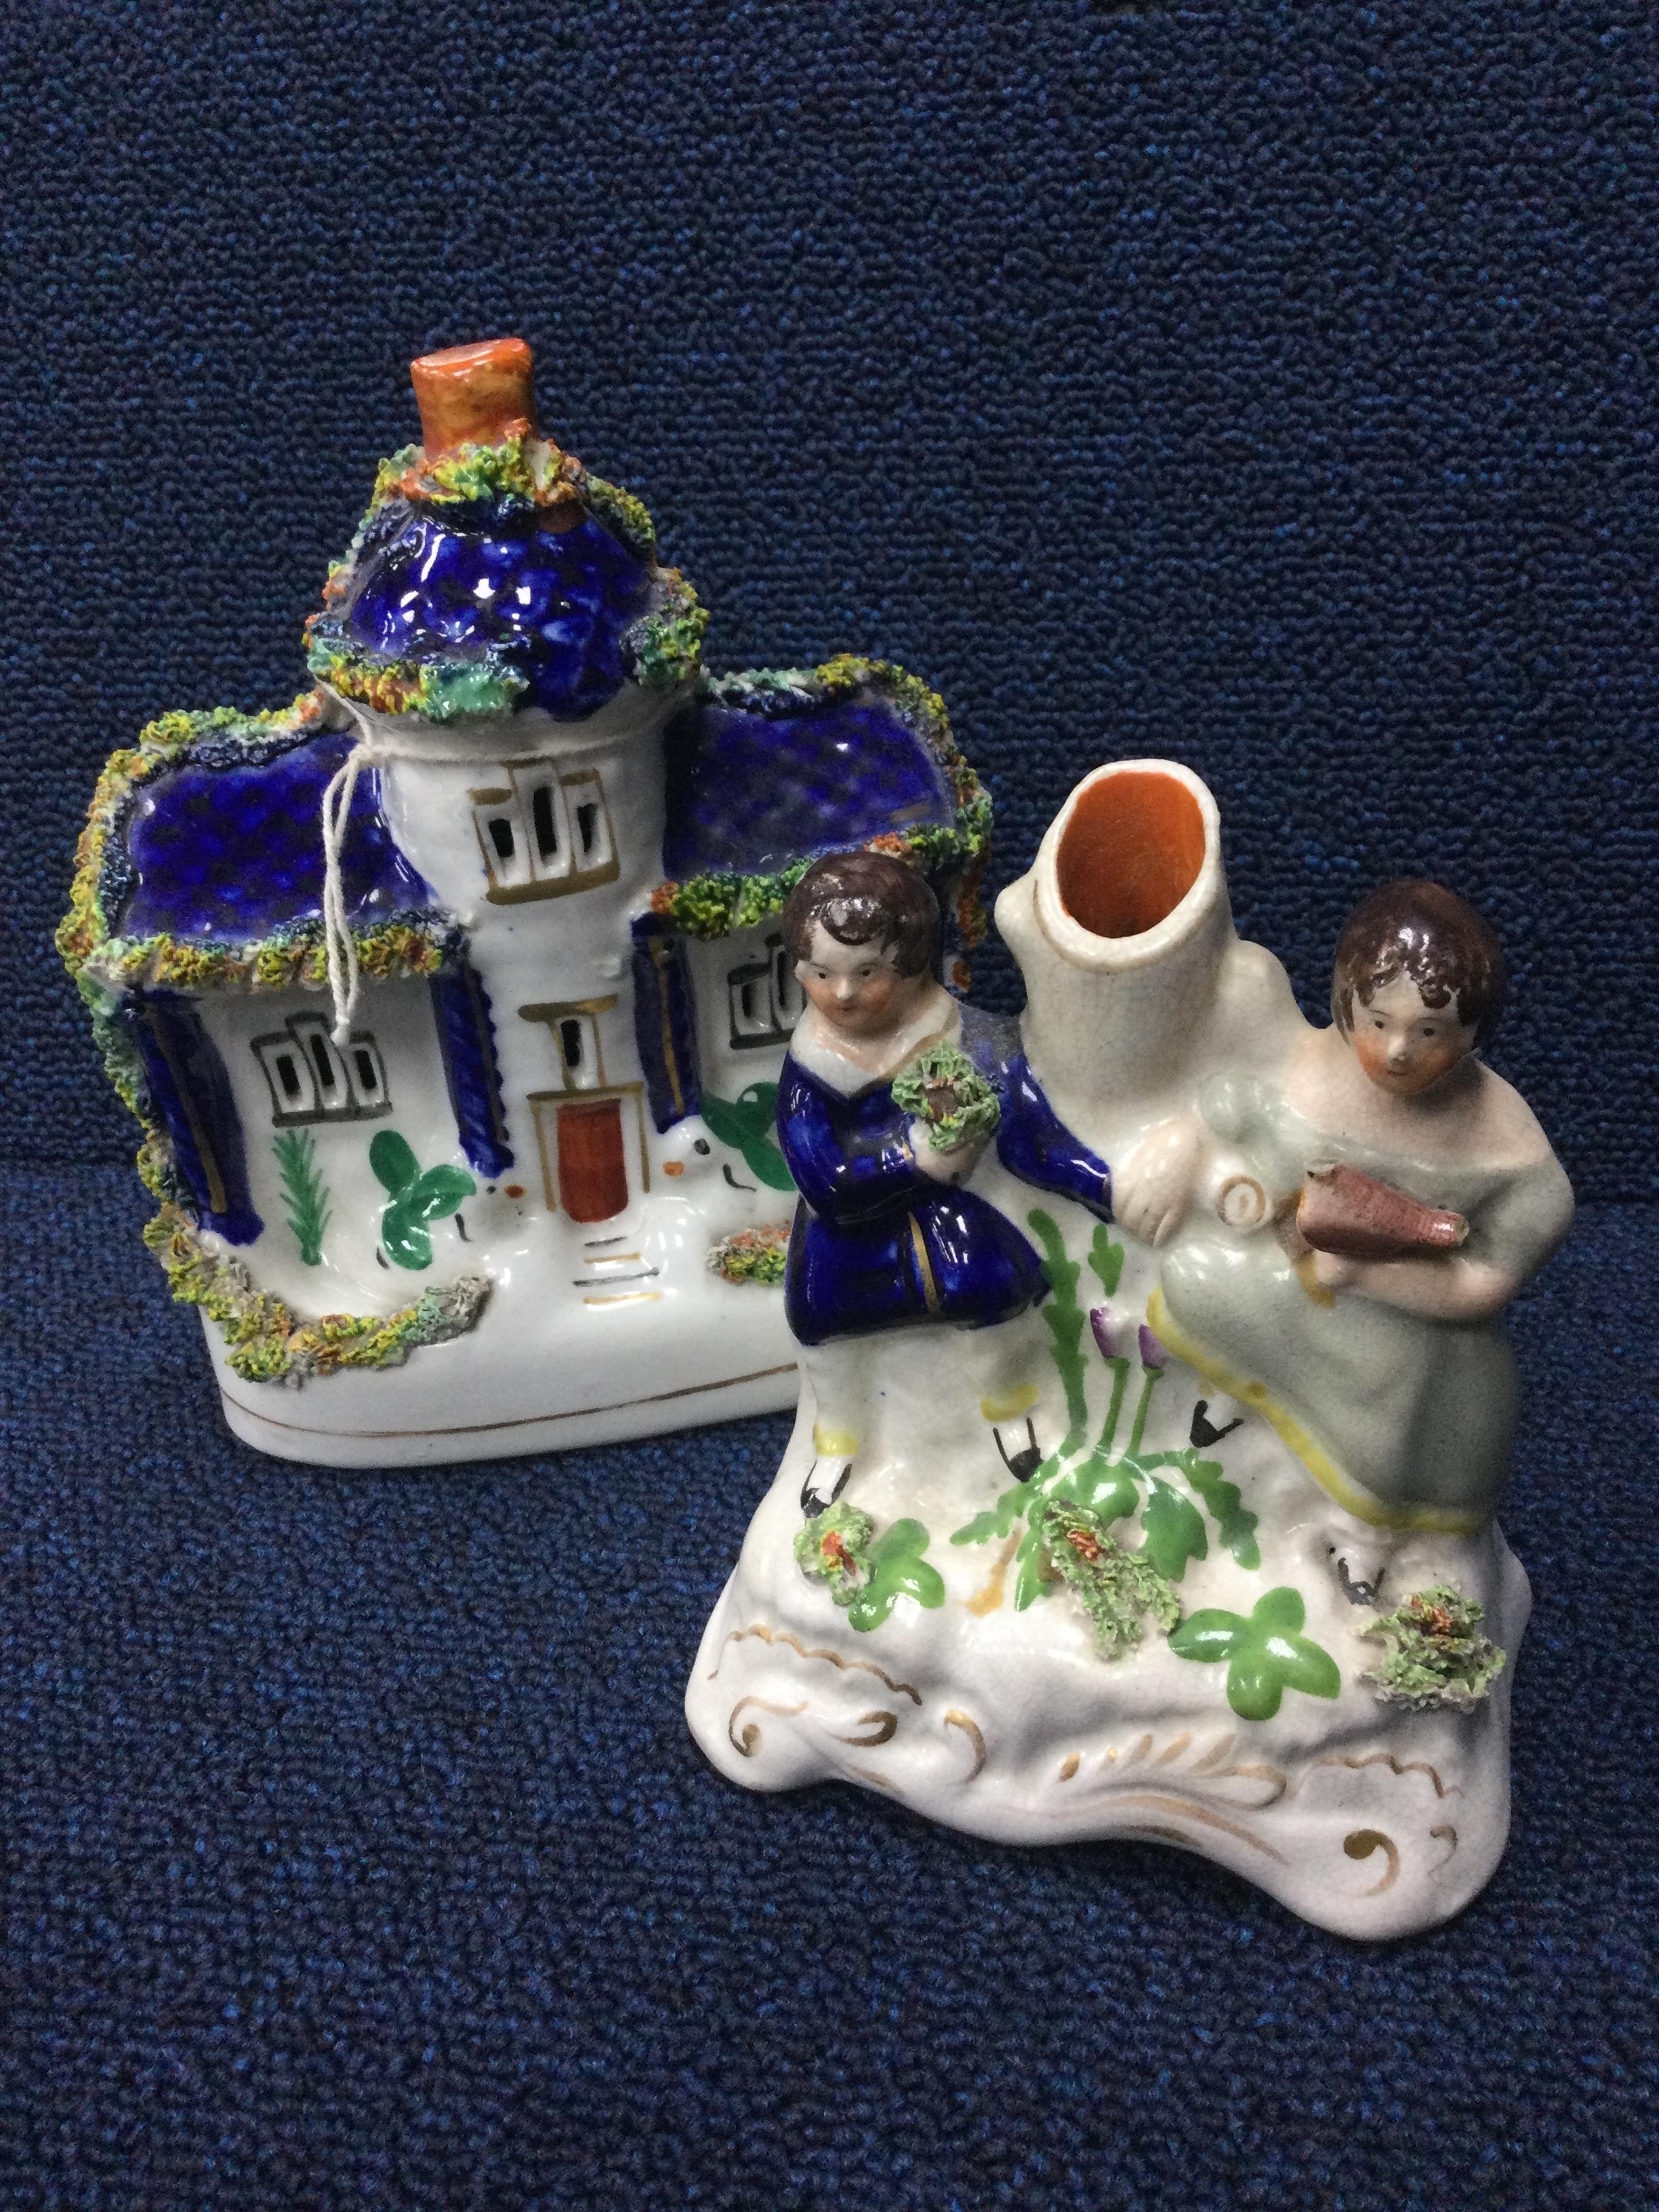 A LOT OF THREE VCTORIAN STAFFORDSHIRE BUILDINGS, A VASE AND ANOTHER BUILDING - Image 2 of 2